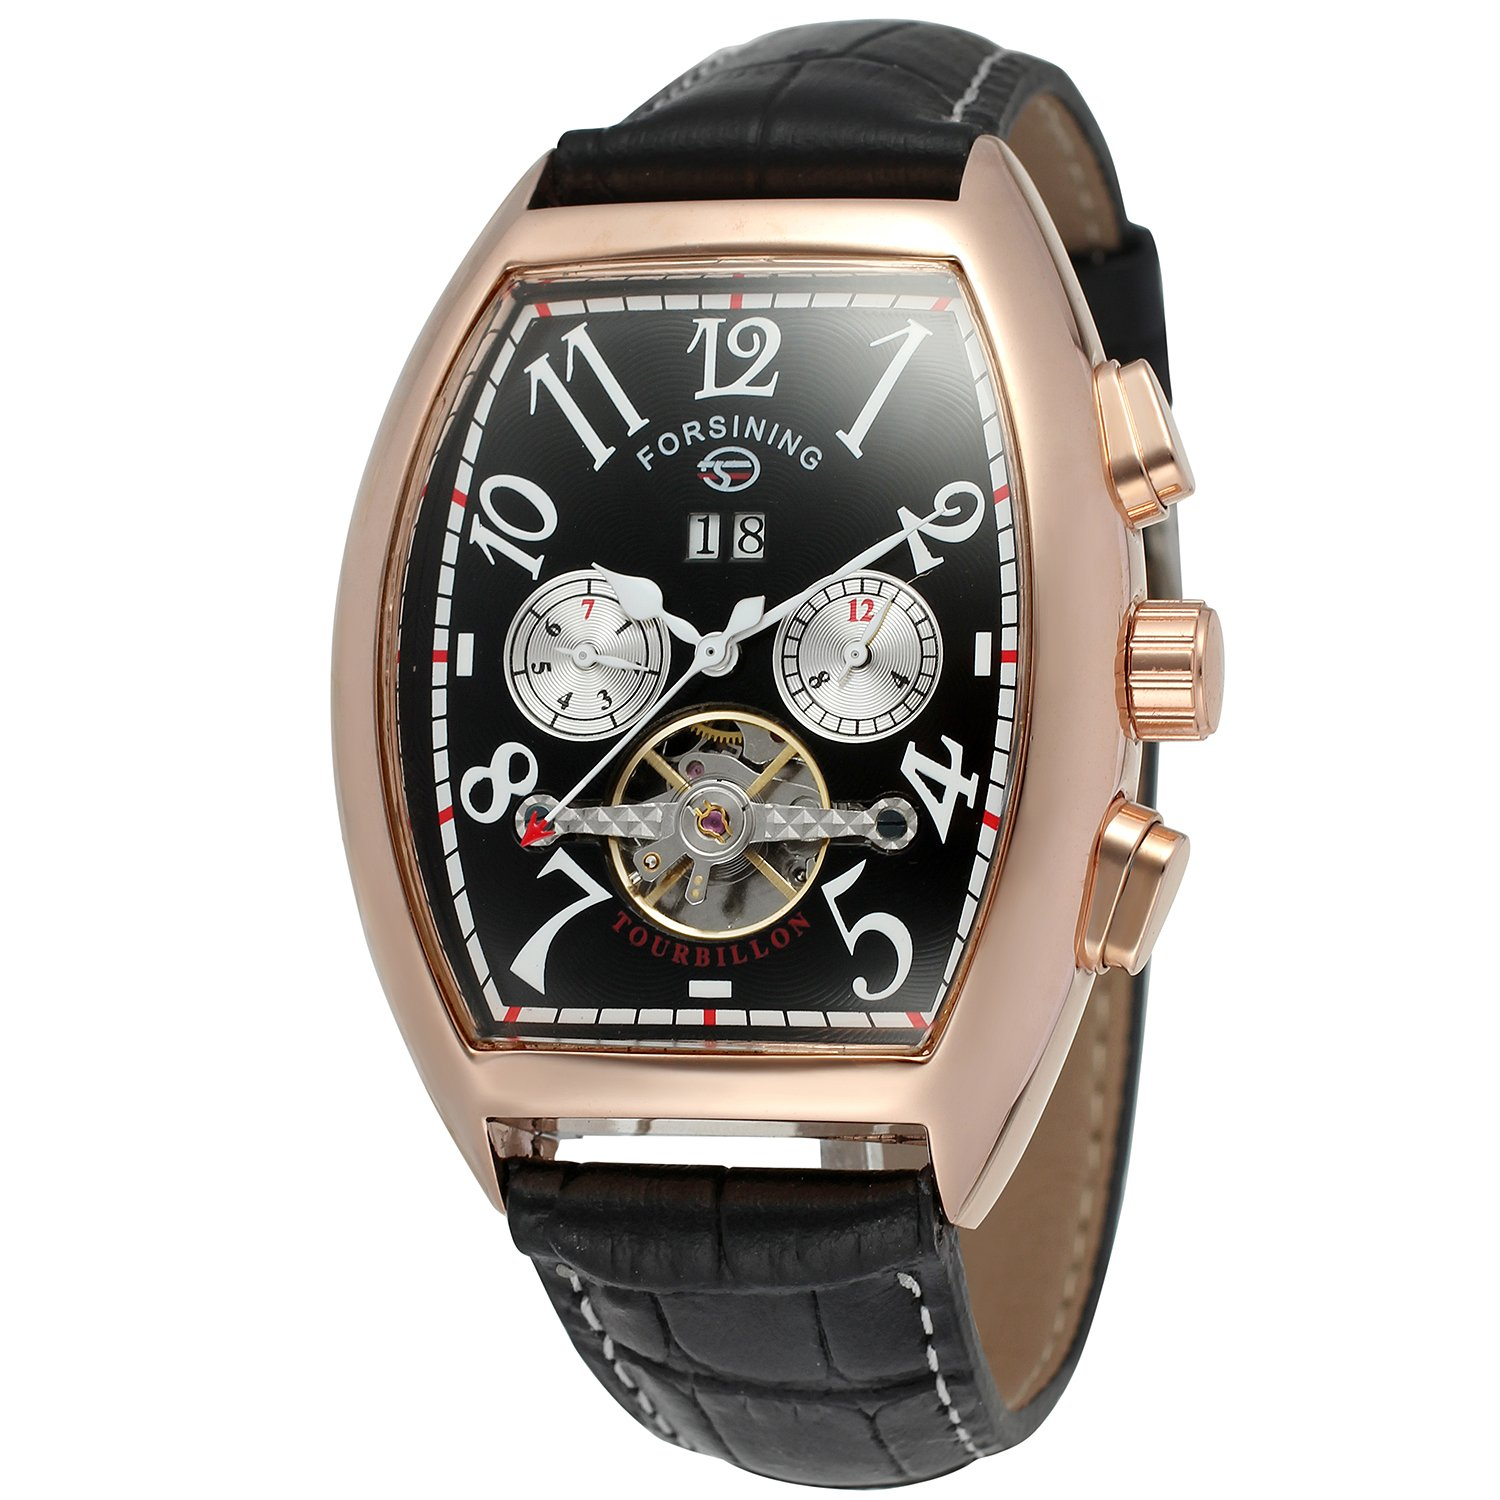 Forsining Men's Automatic Self-winding Tourbillon Calendar Brand Learher Strap Collectiton Watch FSG9409M3R5 by FORSINING (Image #1)